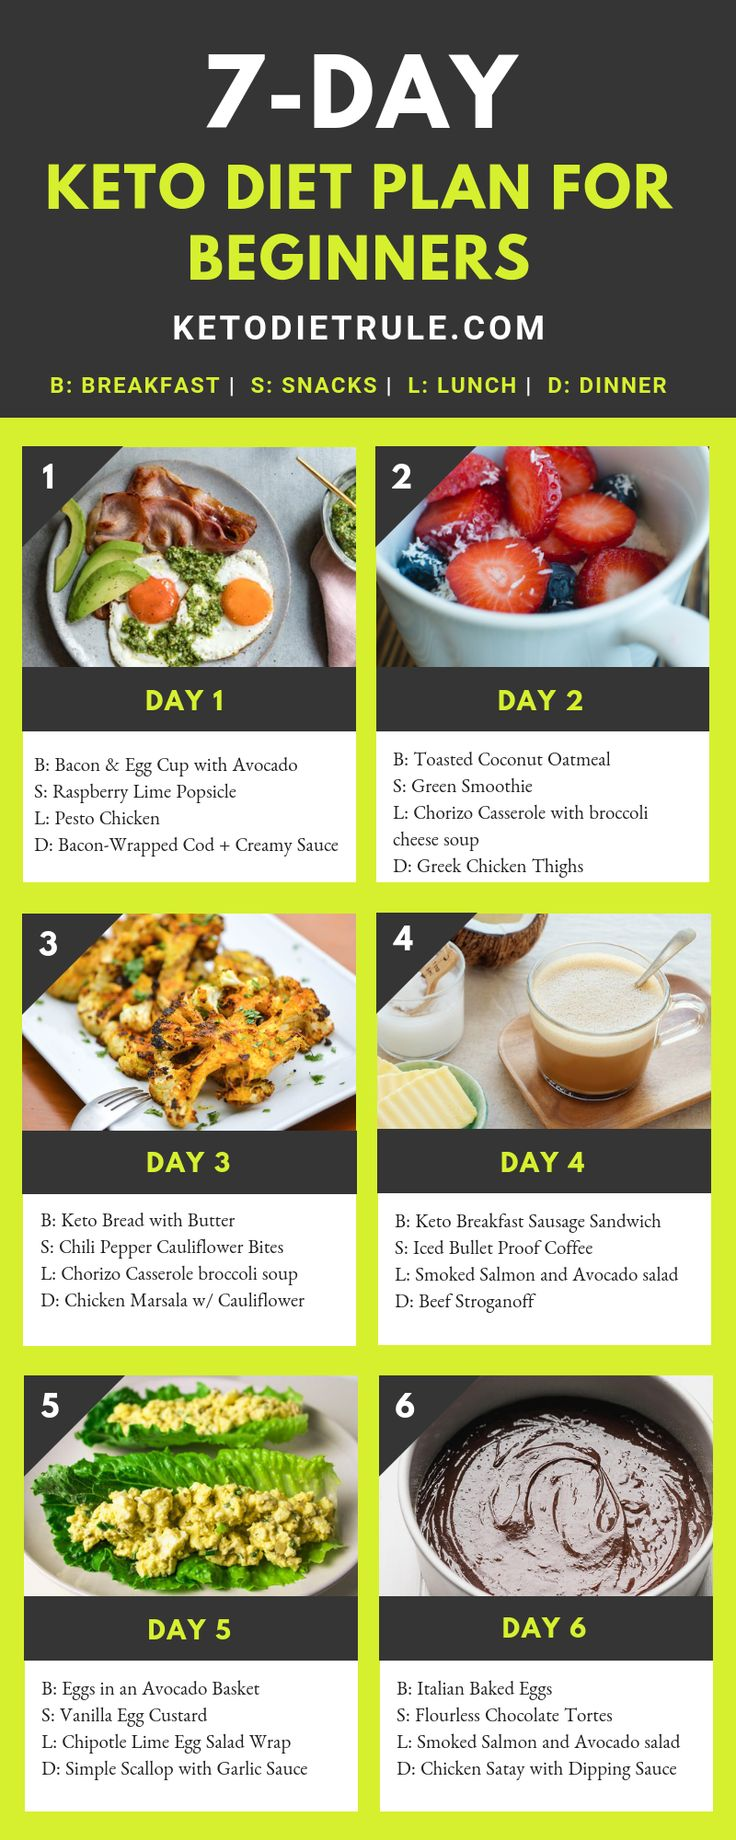 7-day keto diet plan for beginners to lose weight. #ketodietplan #ketodiet #keto...